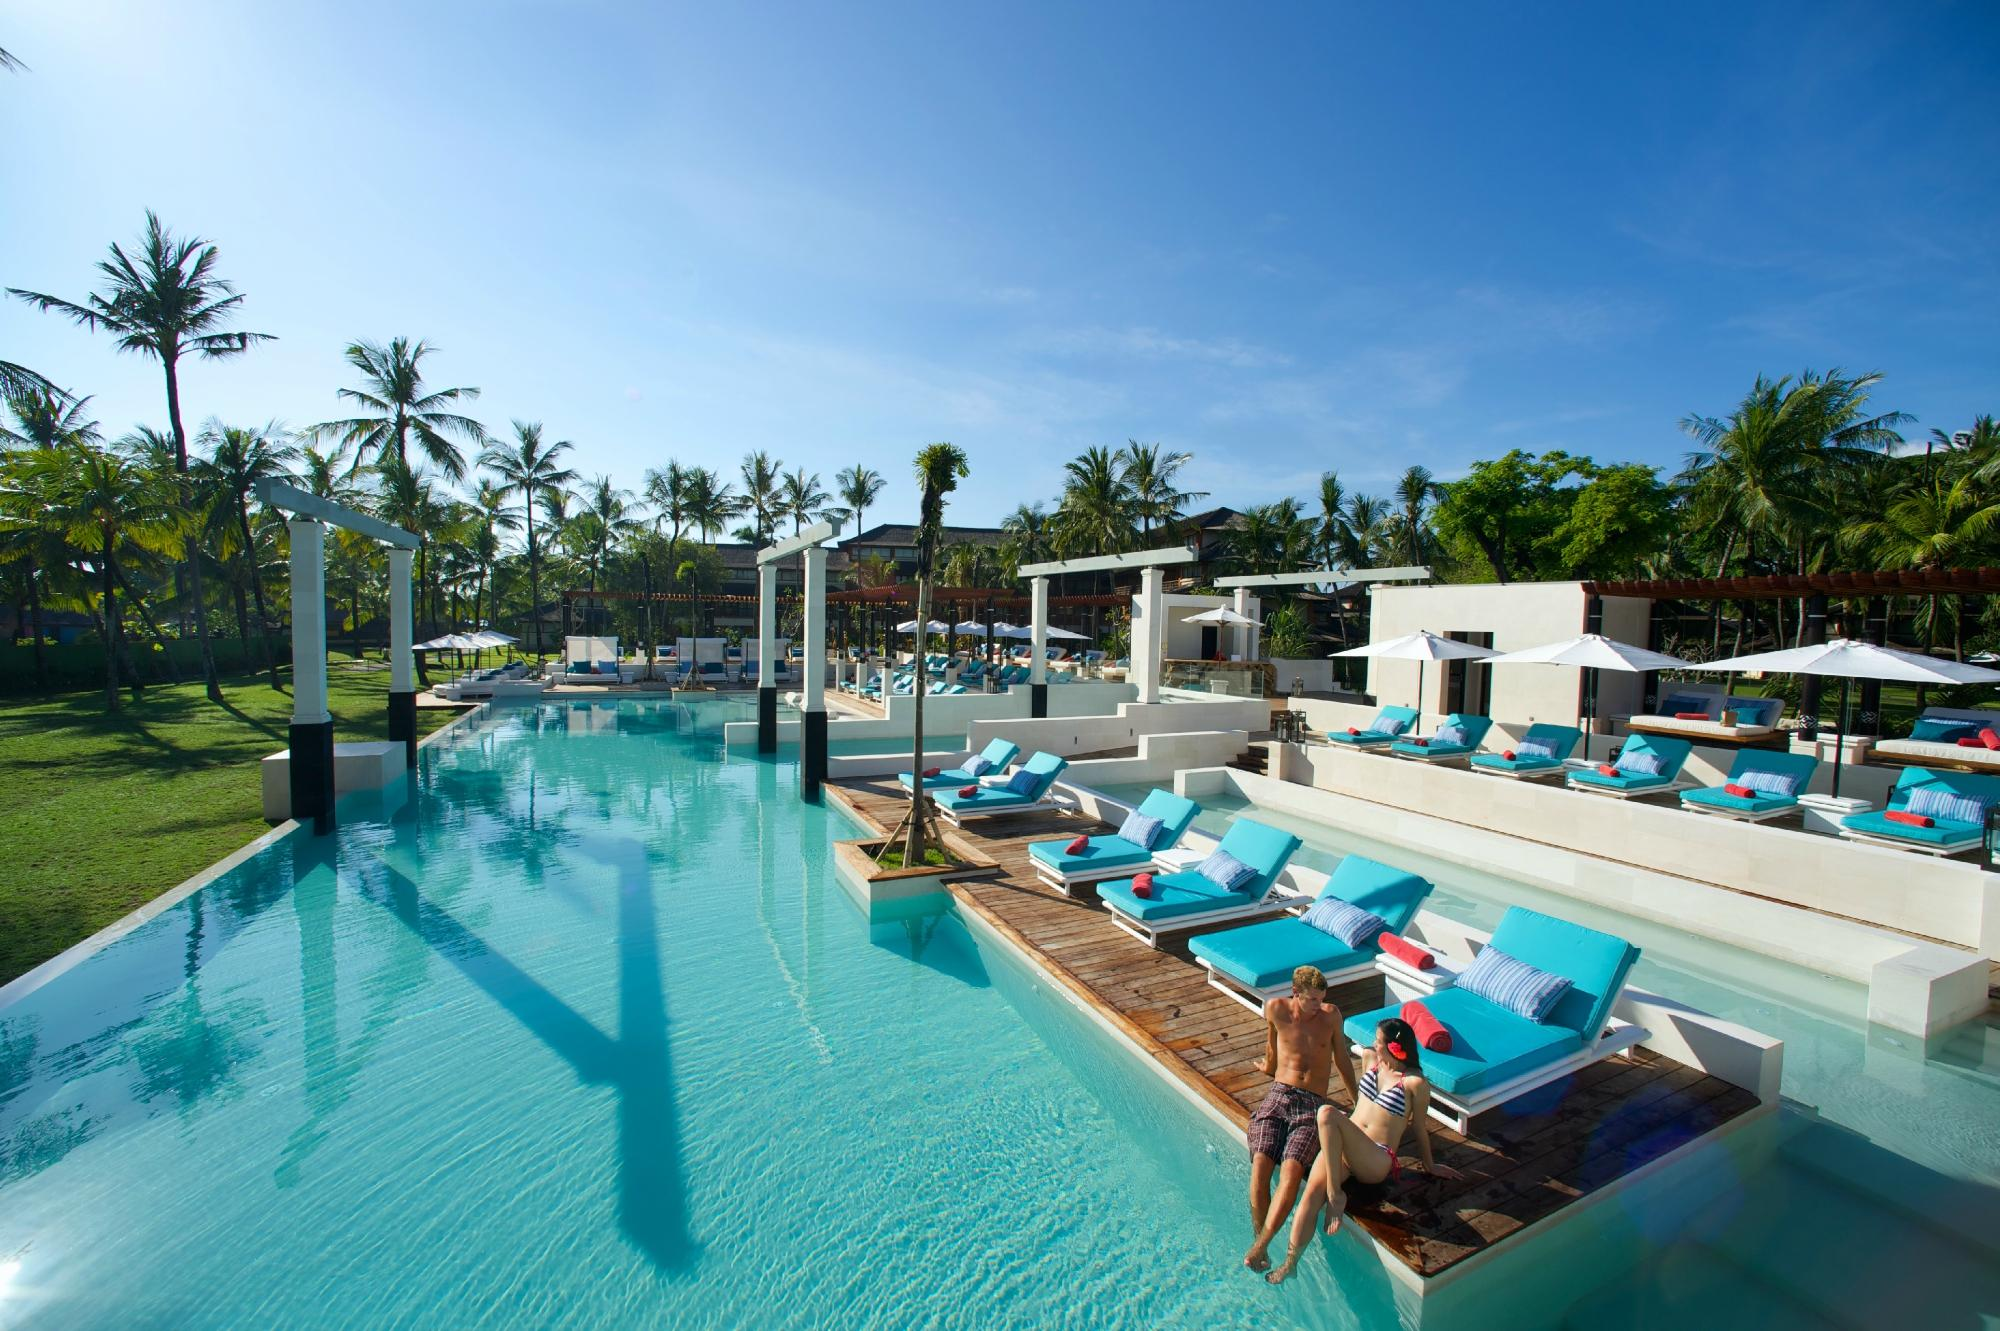 Club Med Bali S Quite Pool Image Courtesy Tripadvisor